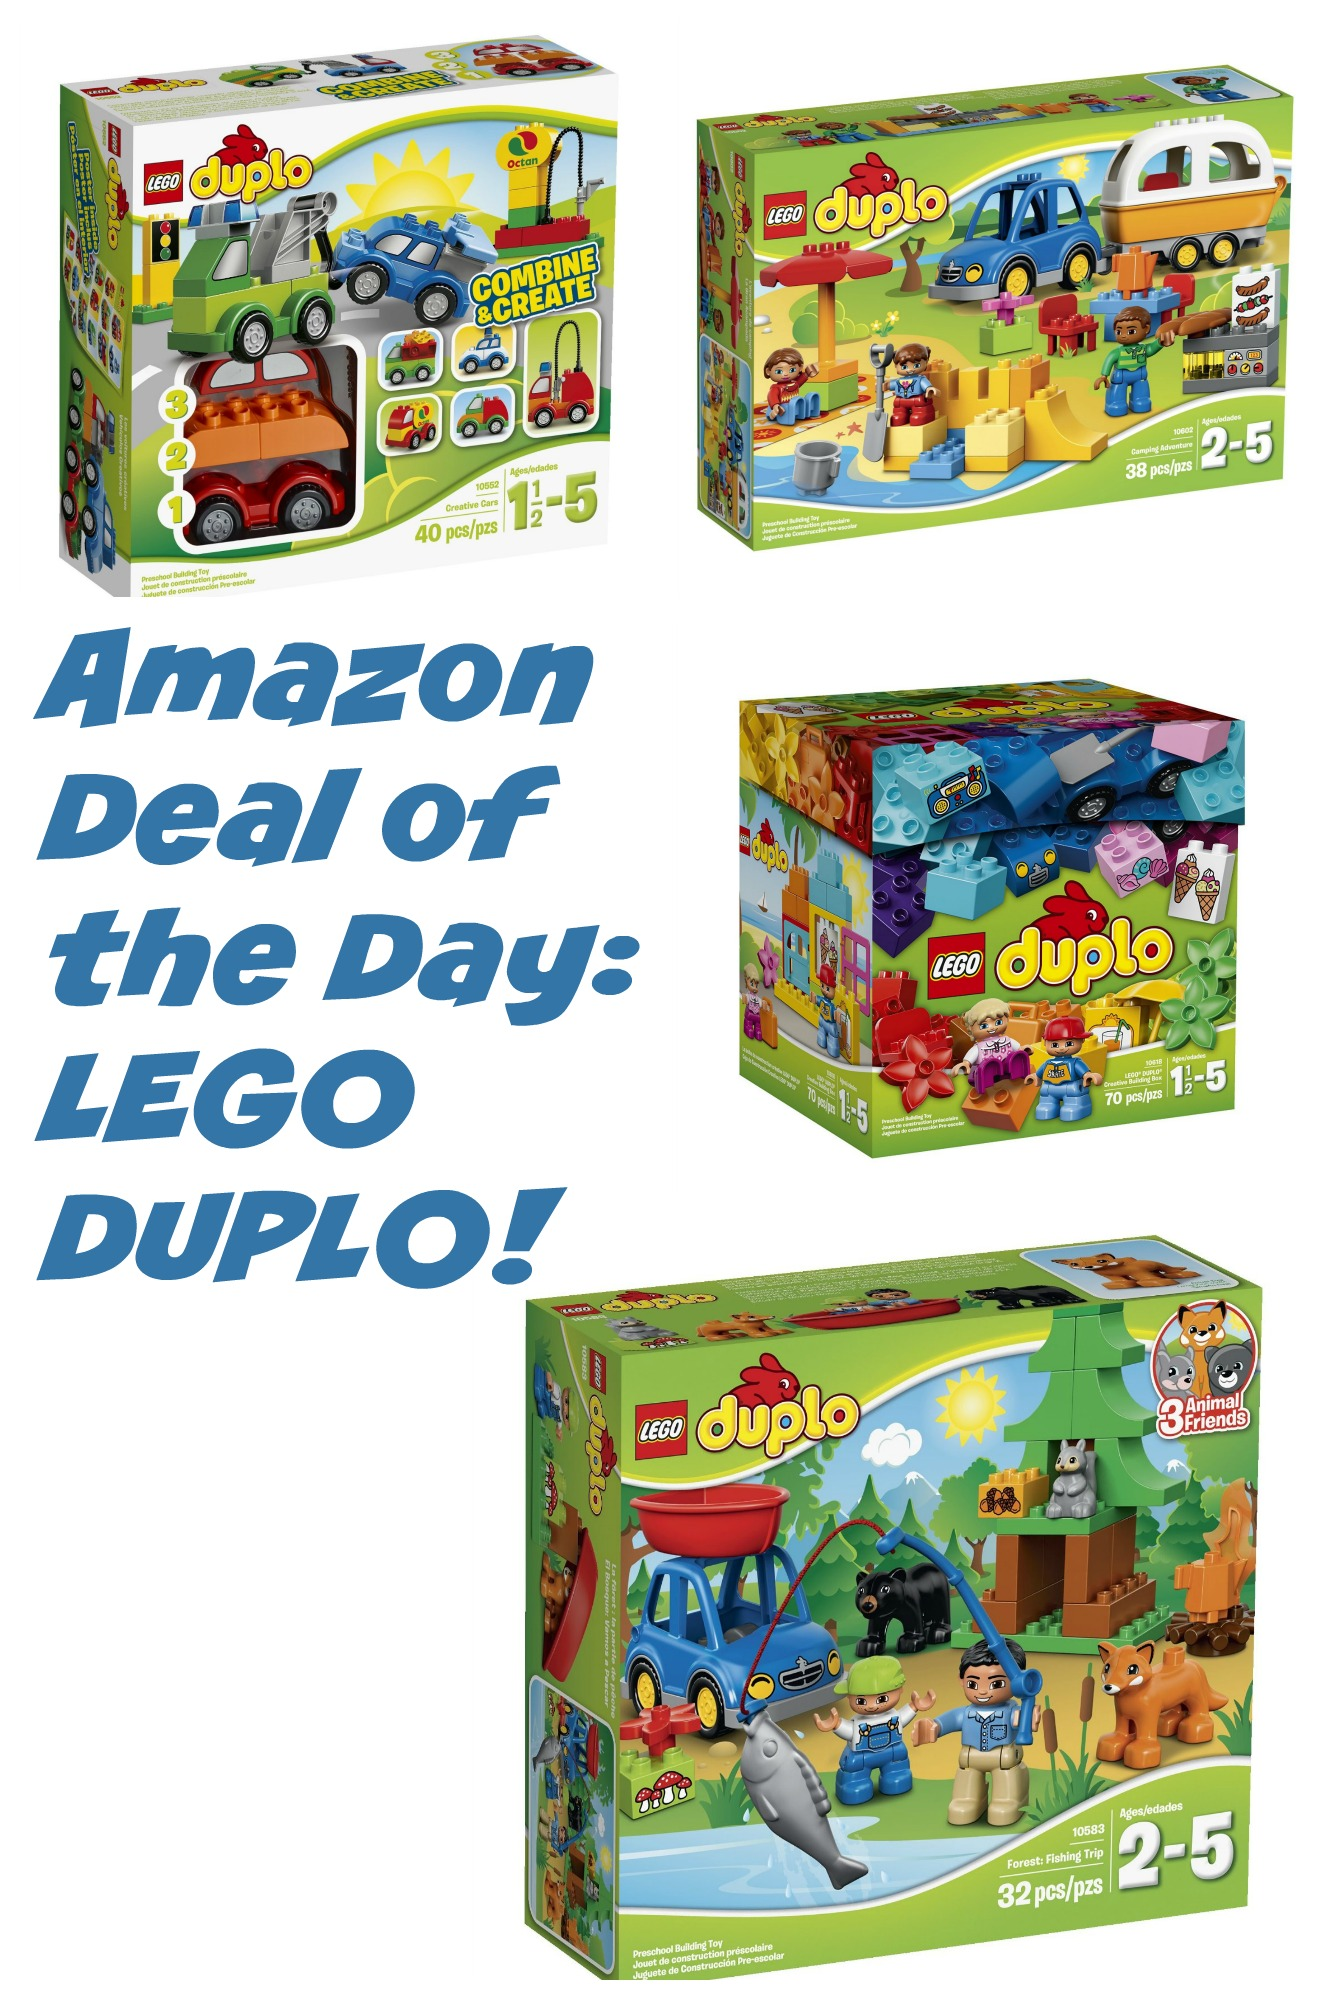 Amazon Deal of the Day: Up to 25% Off Select LEGO DUPLO!